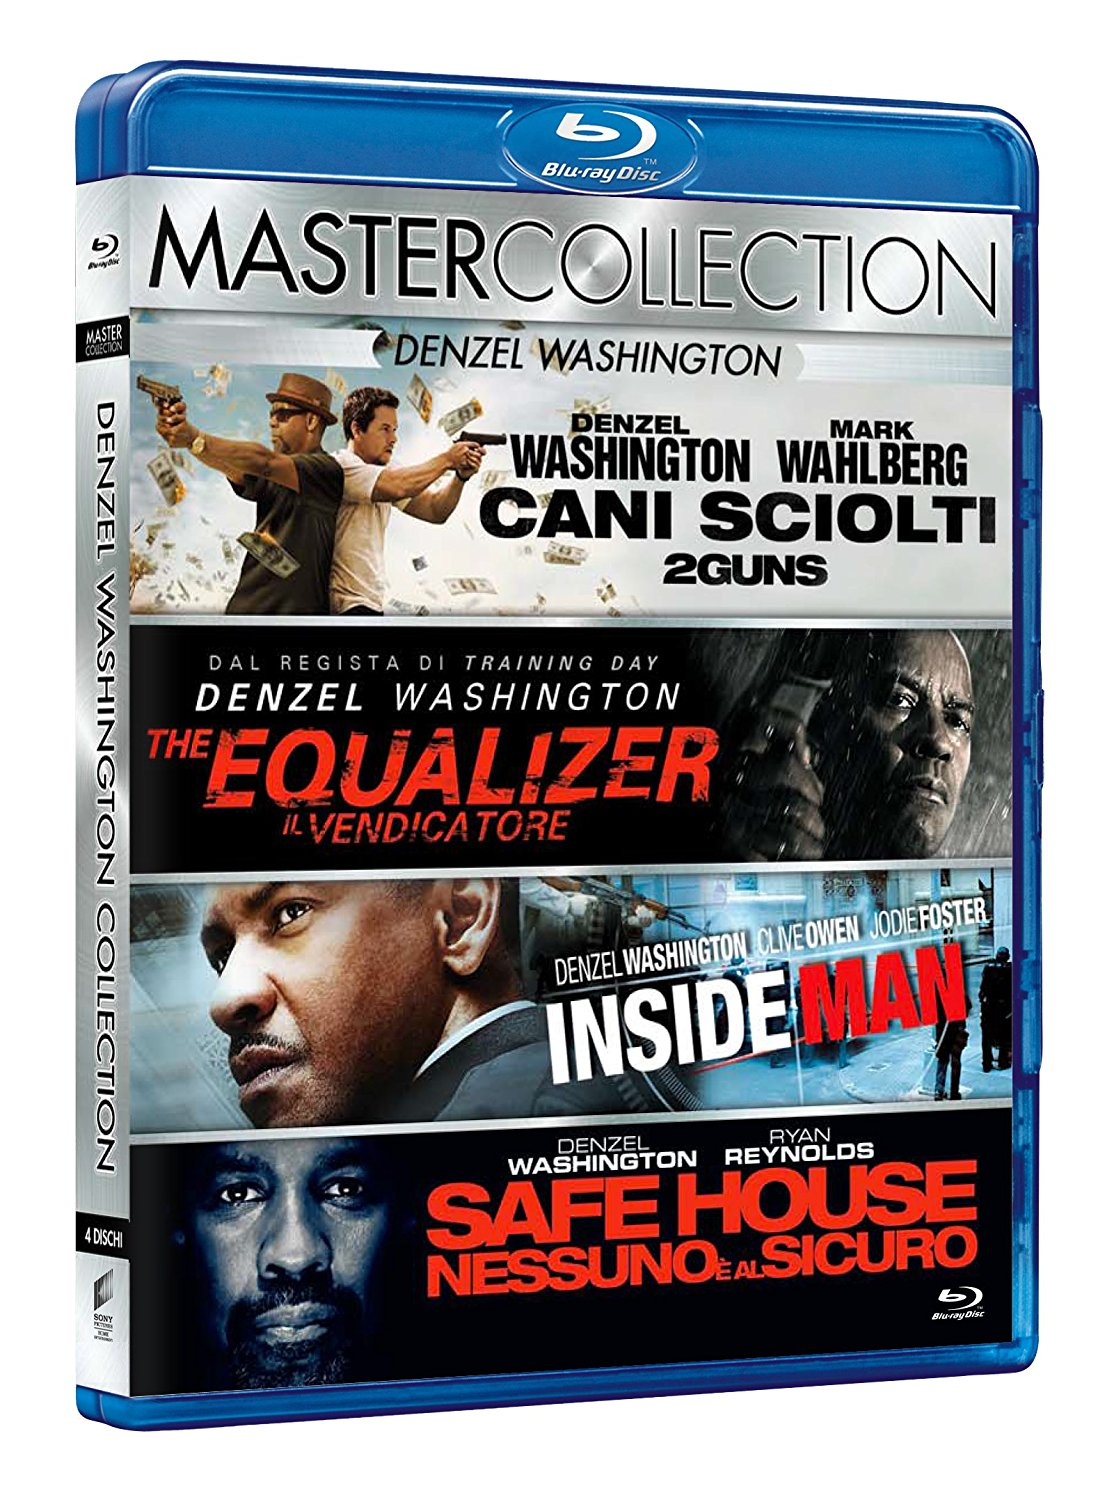 Denzel Washington master collection: Inside man (2006) - Safe house (2012) - Cani sciolti (2013) - The equalizer (2014)